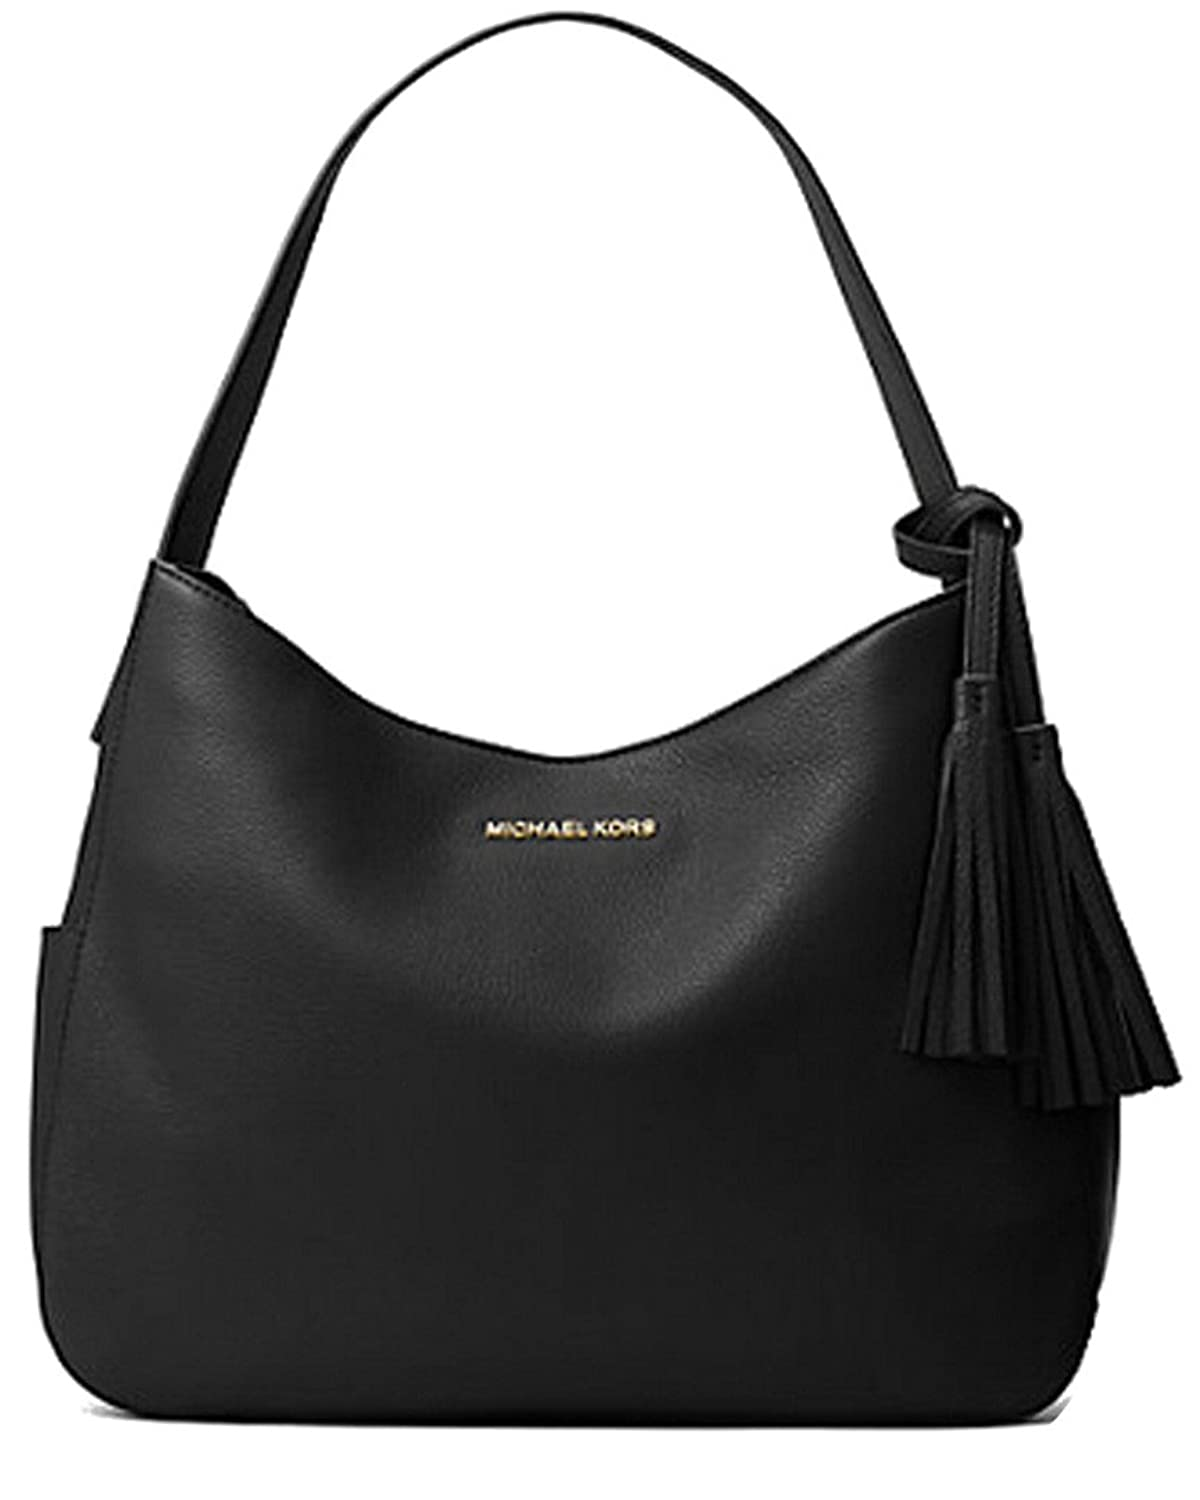 amazon michael kors tote bags michael kors handbags sale discount